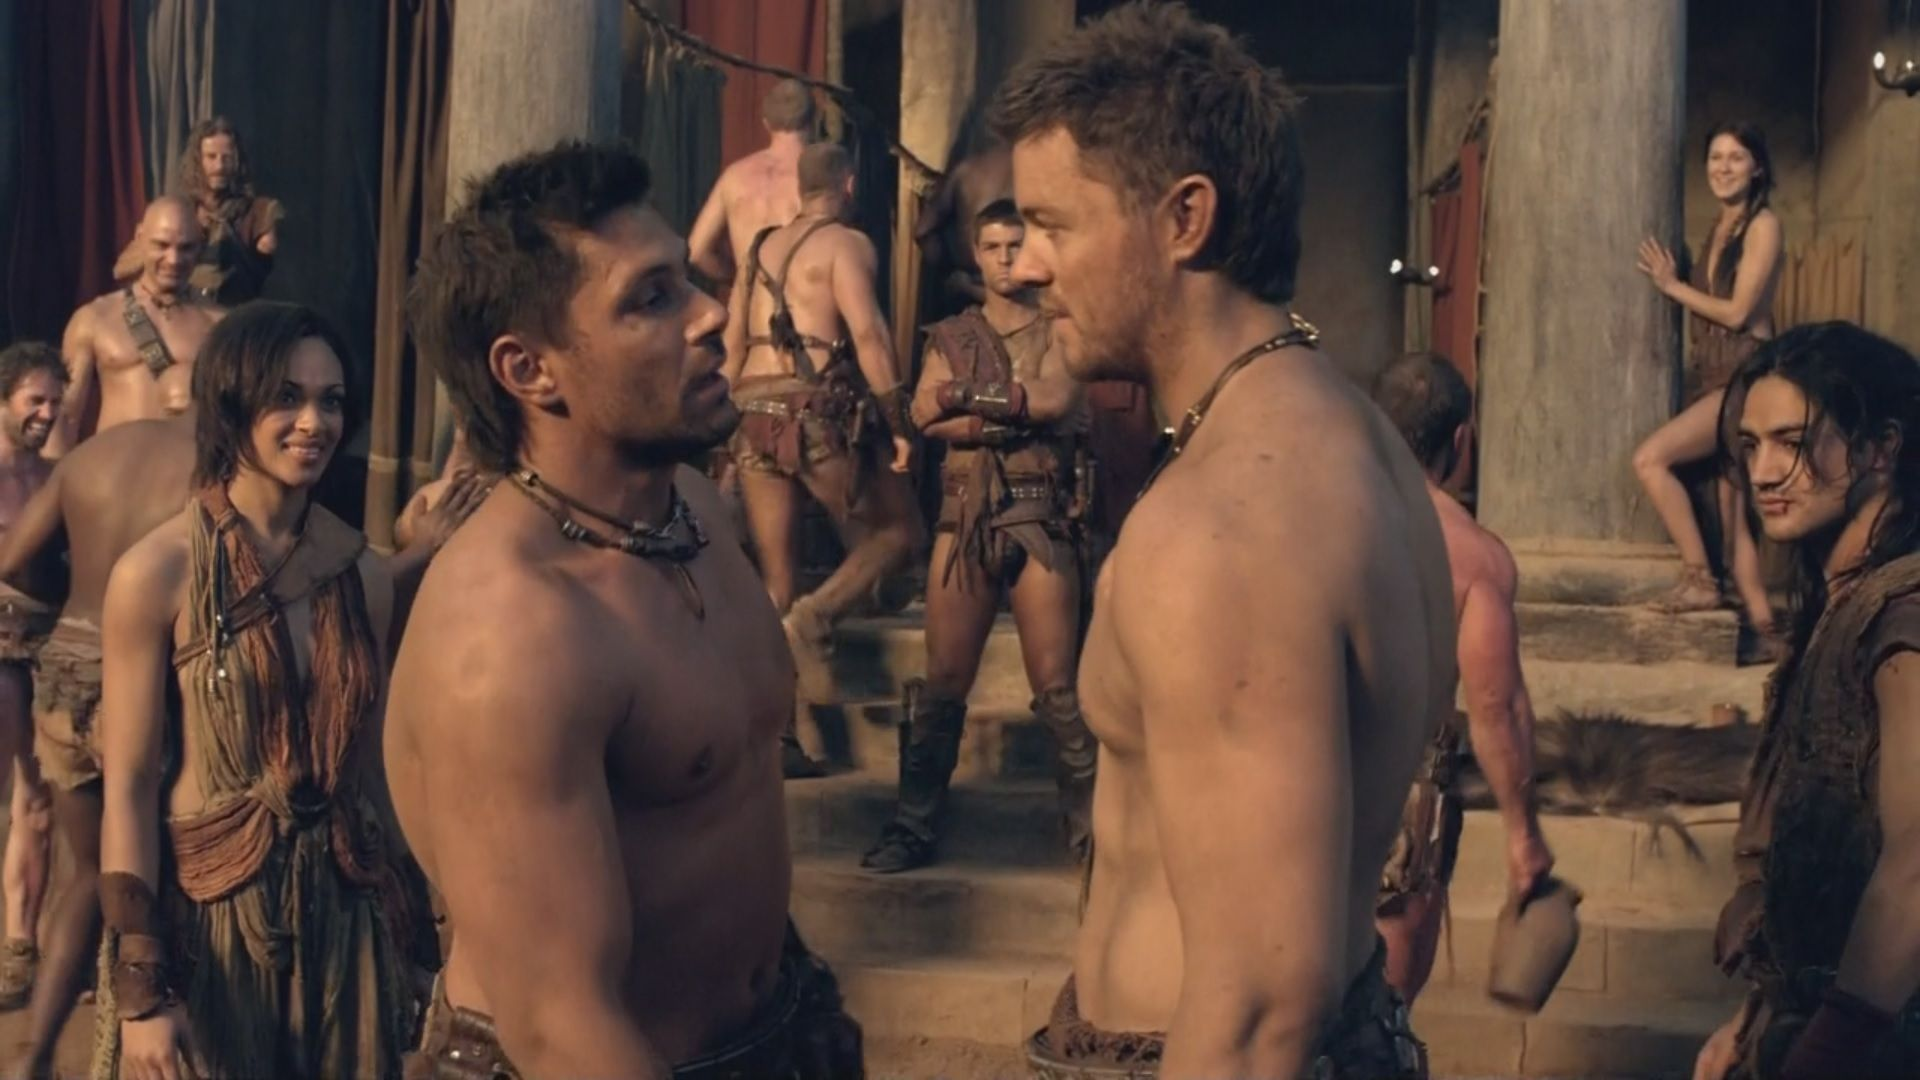 Laurence olivier spartacus quotes - Agron And Crixus Nasir Looks So Cute In This Spartacus Pinterest Spartacus And Tvs